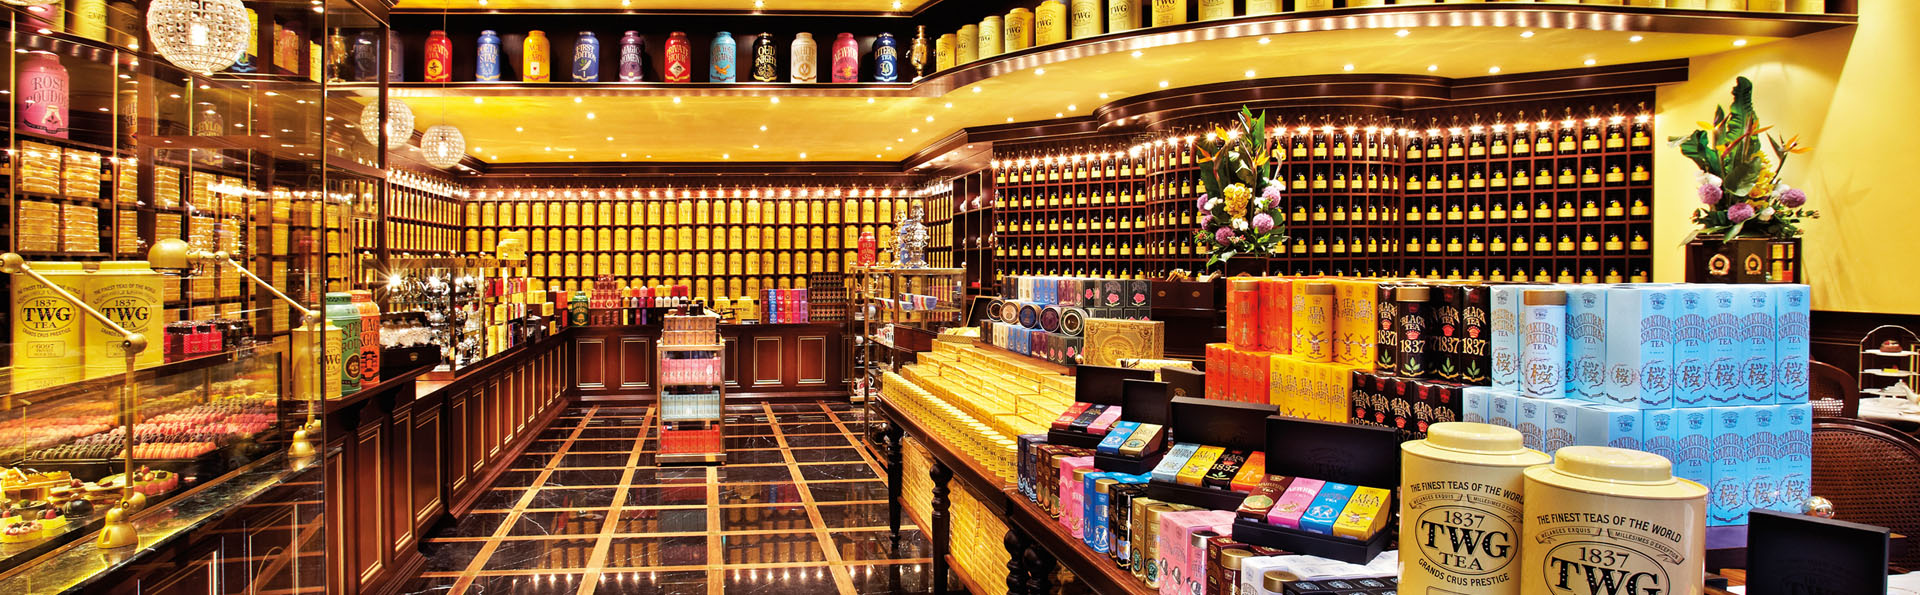 Twg tea salon and boutique singapore restaurants for 56 west boutique and salon